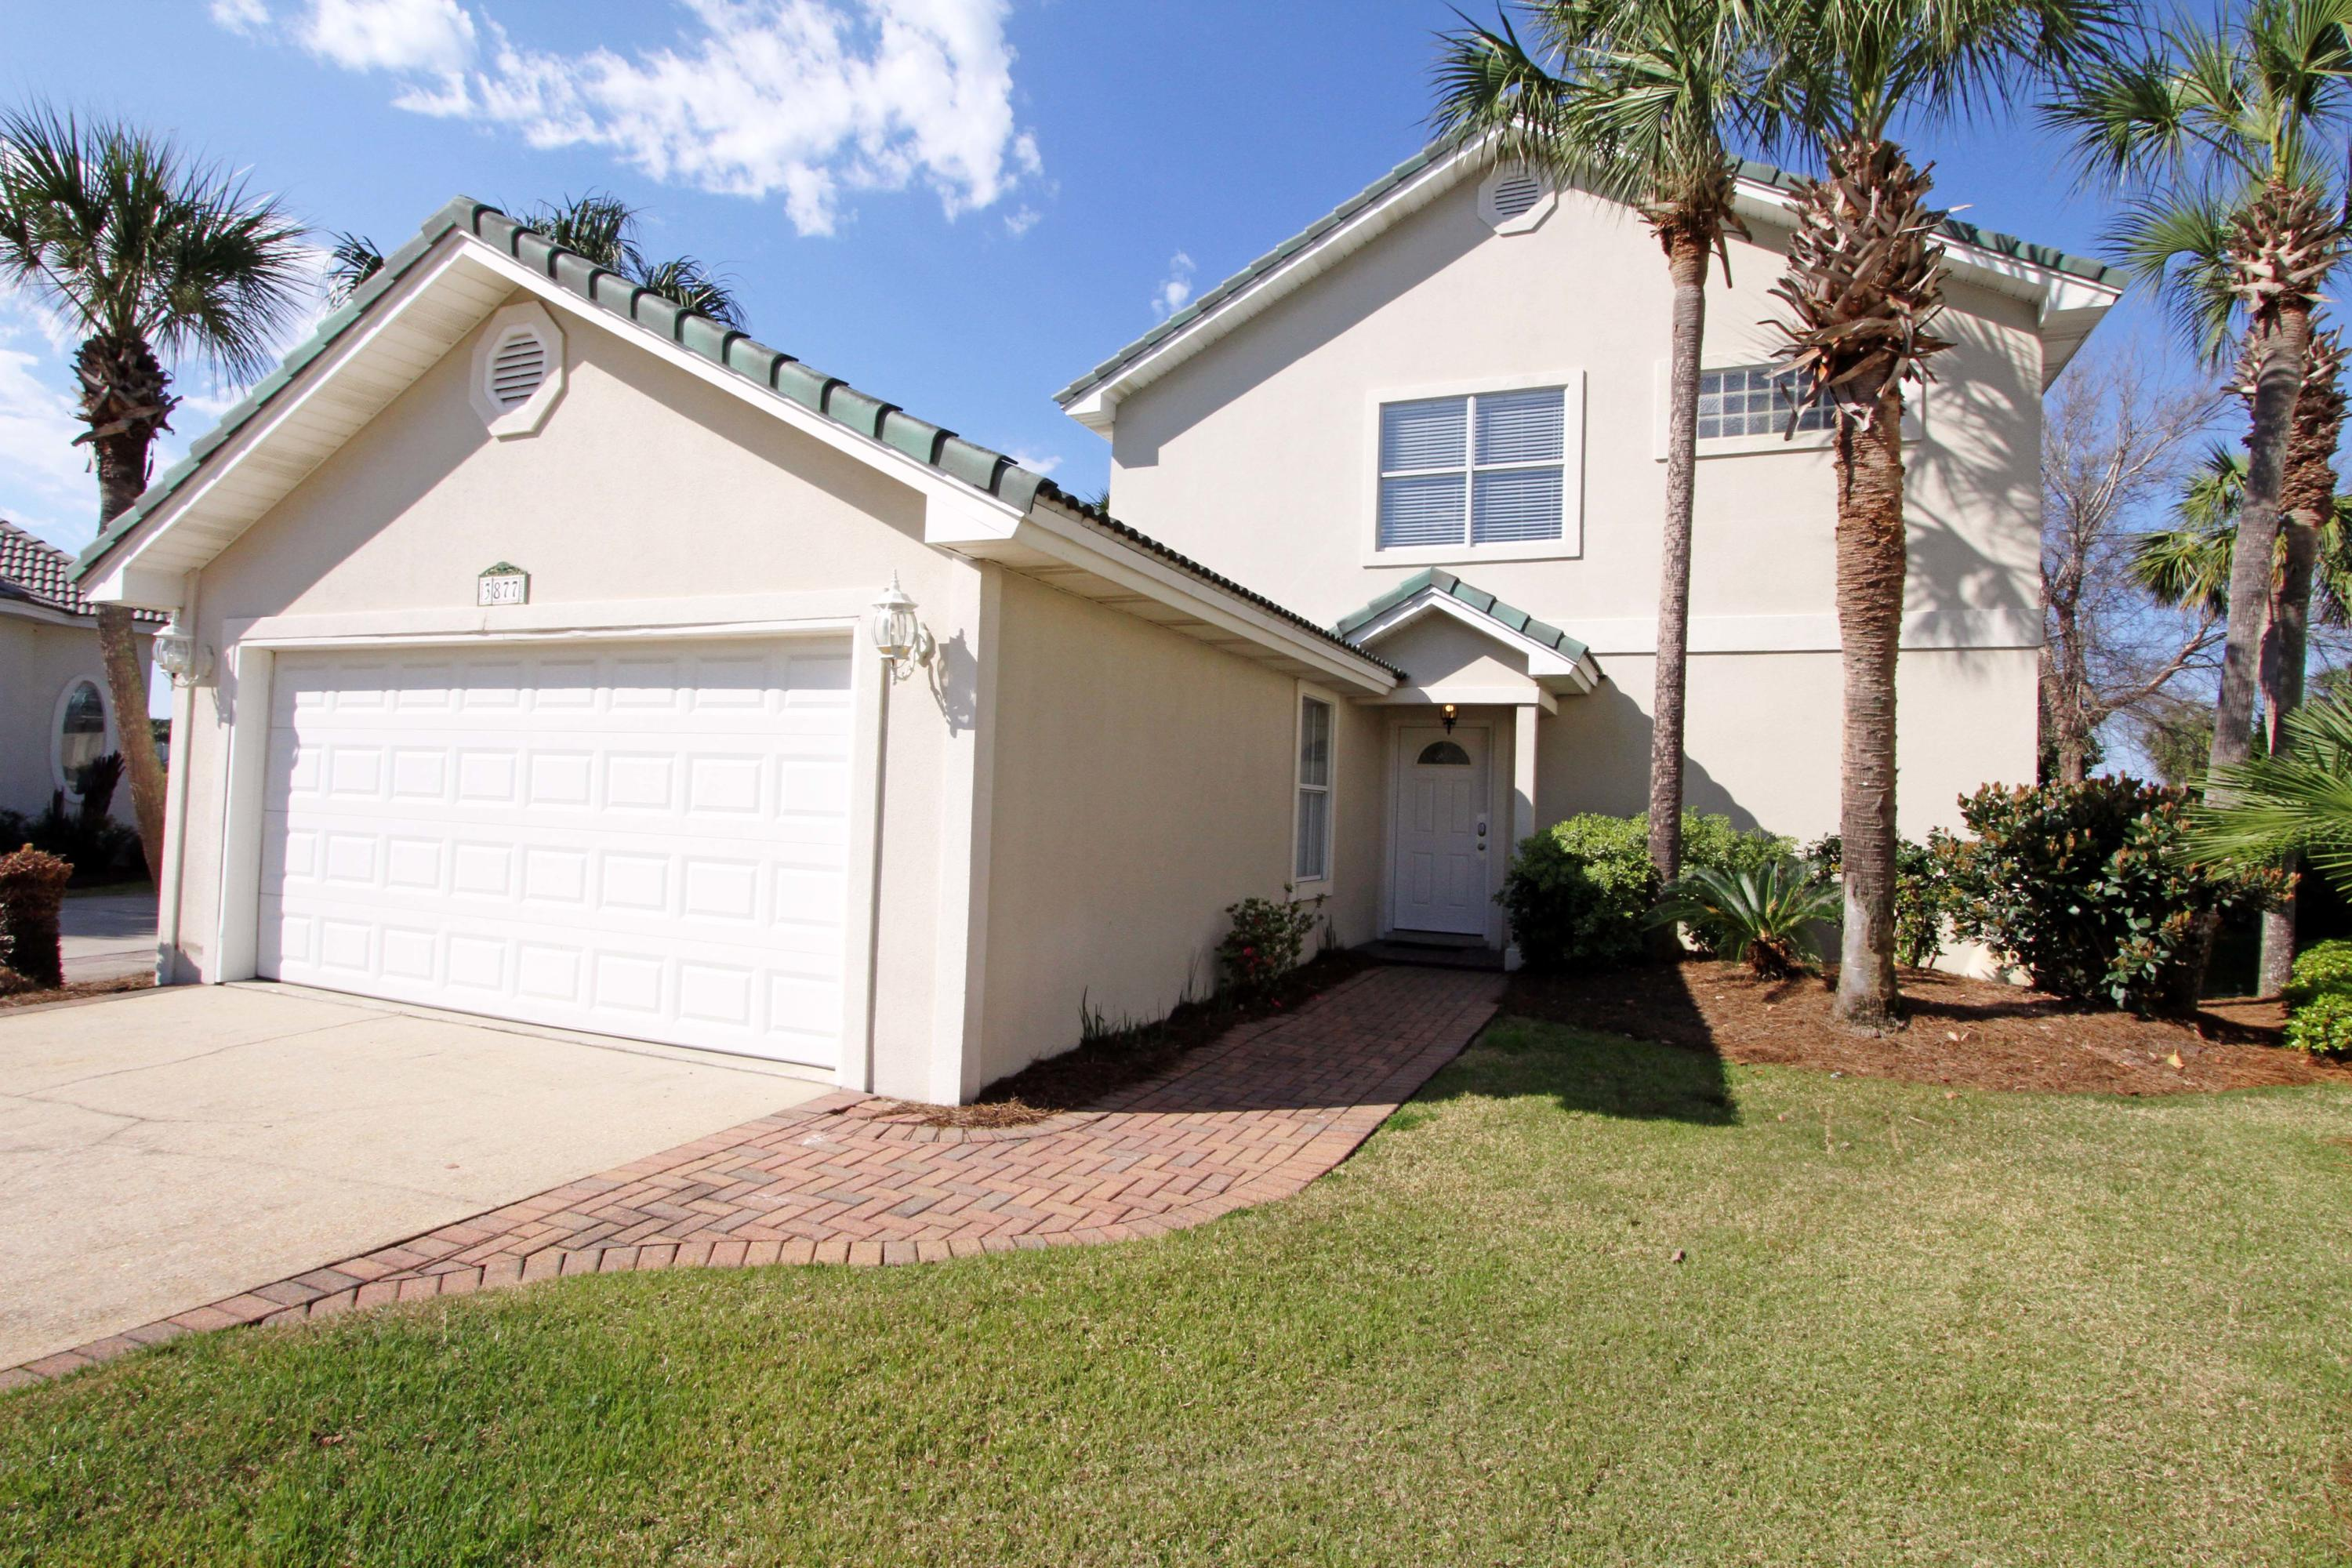 Photo of home for sale at 3877 Sand Dune, Destin FL